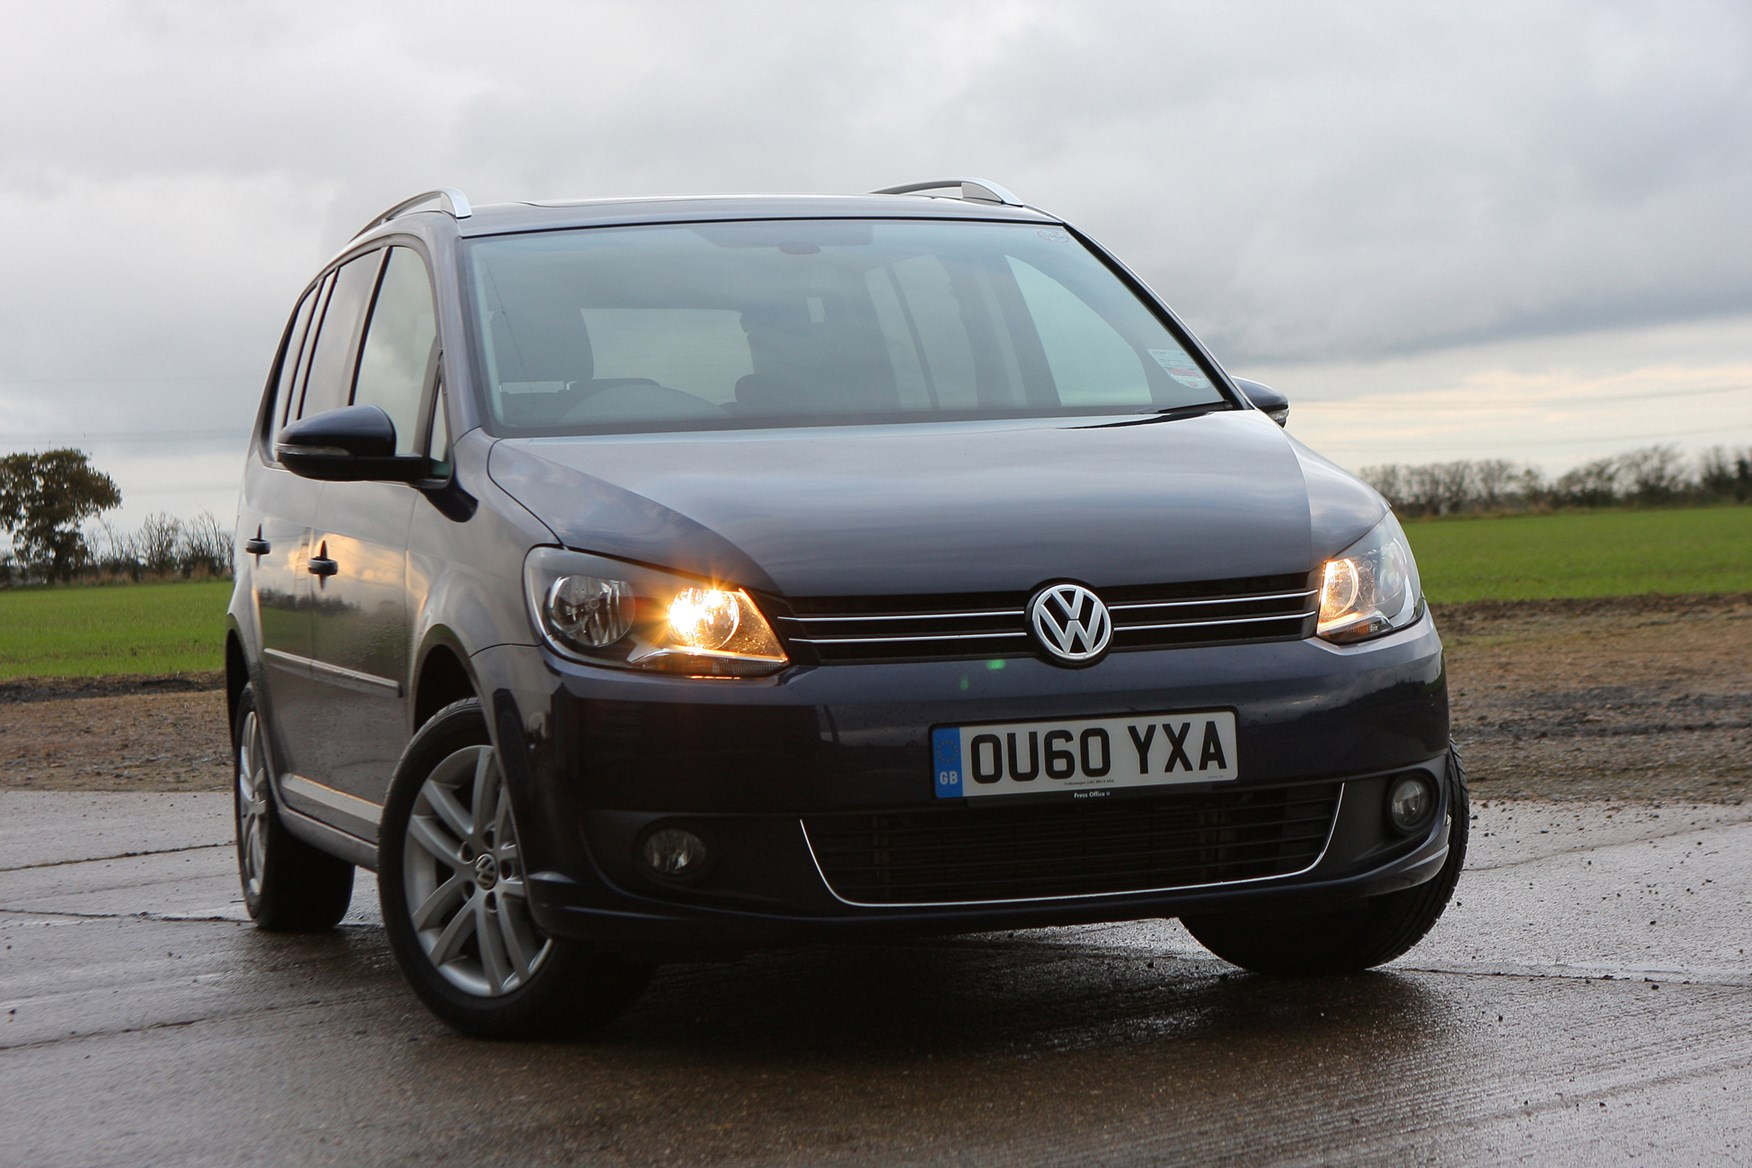 volkswagen touran estate 2010 2015 photos parkers. Black Bedroom Furniture Sets. Home Design Ideas